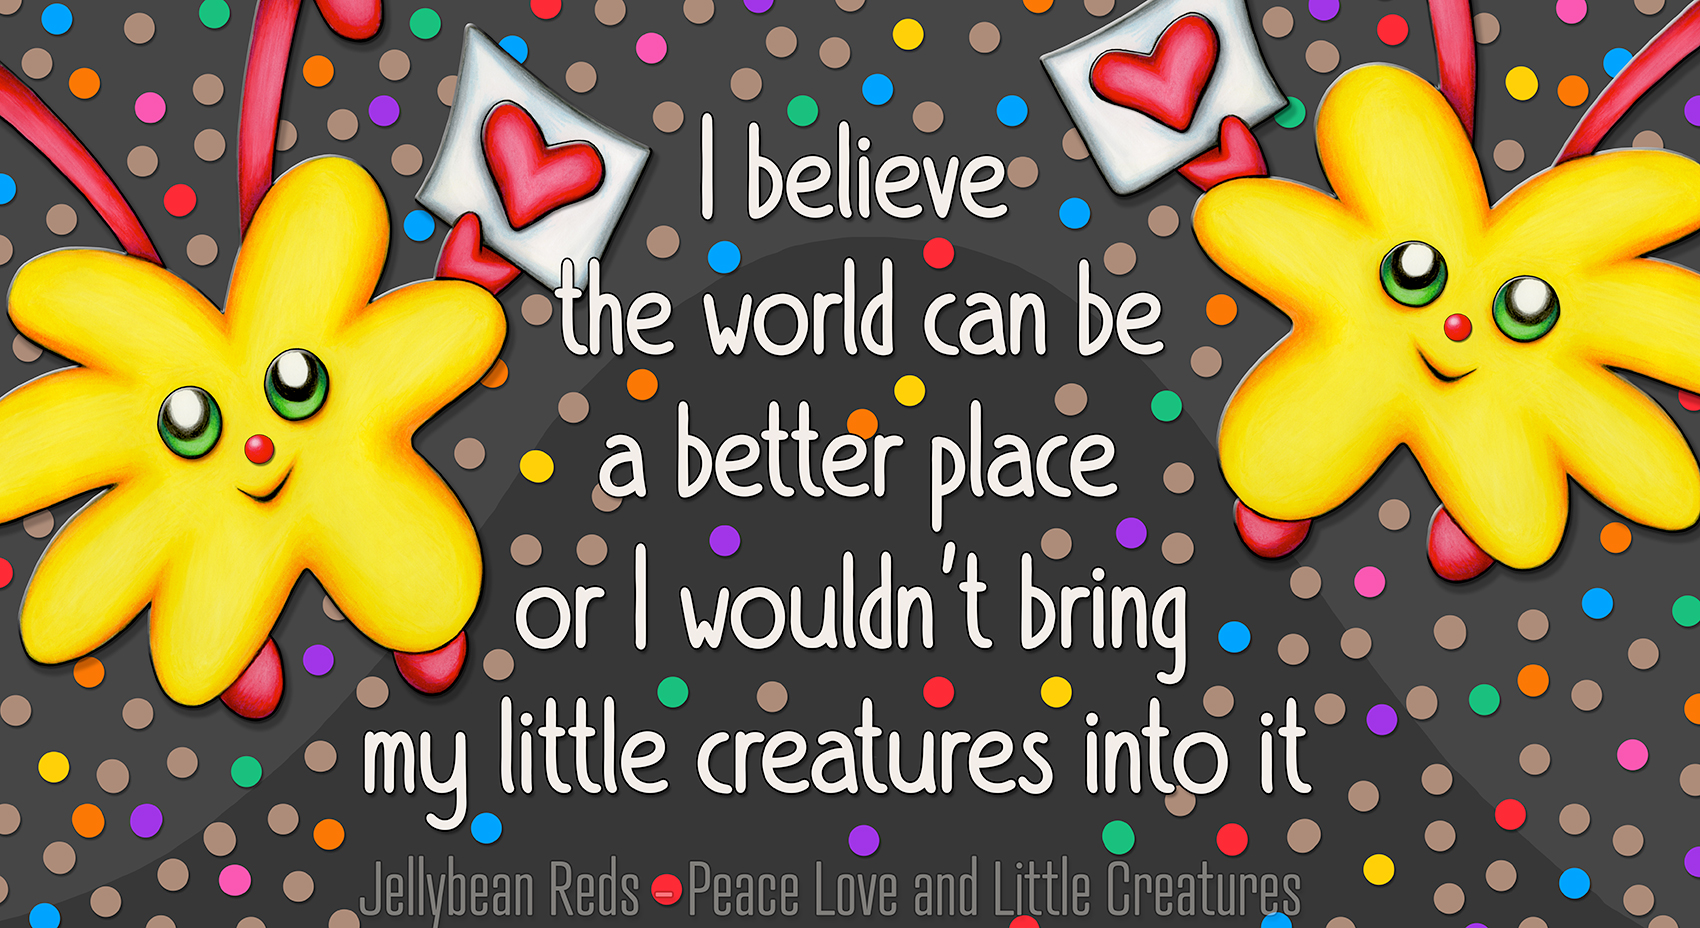 Jelly Quote: I believe the world can be a better place or I wouldn't bring my little creatures into it